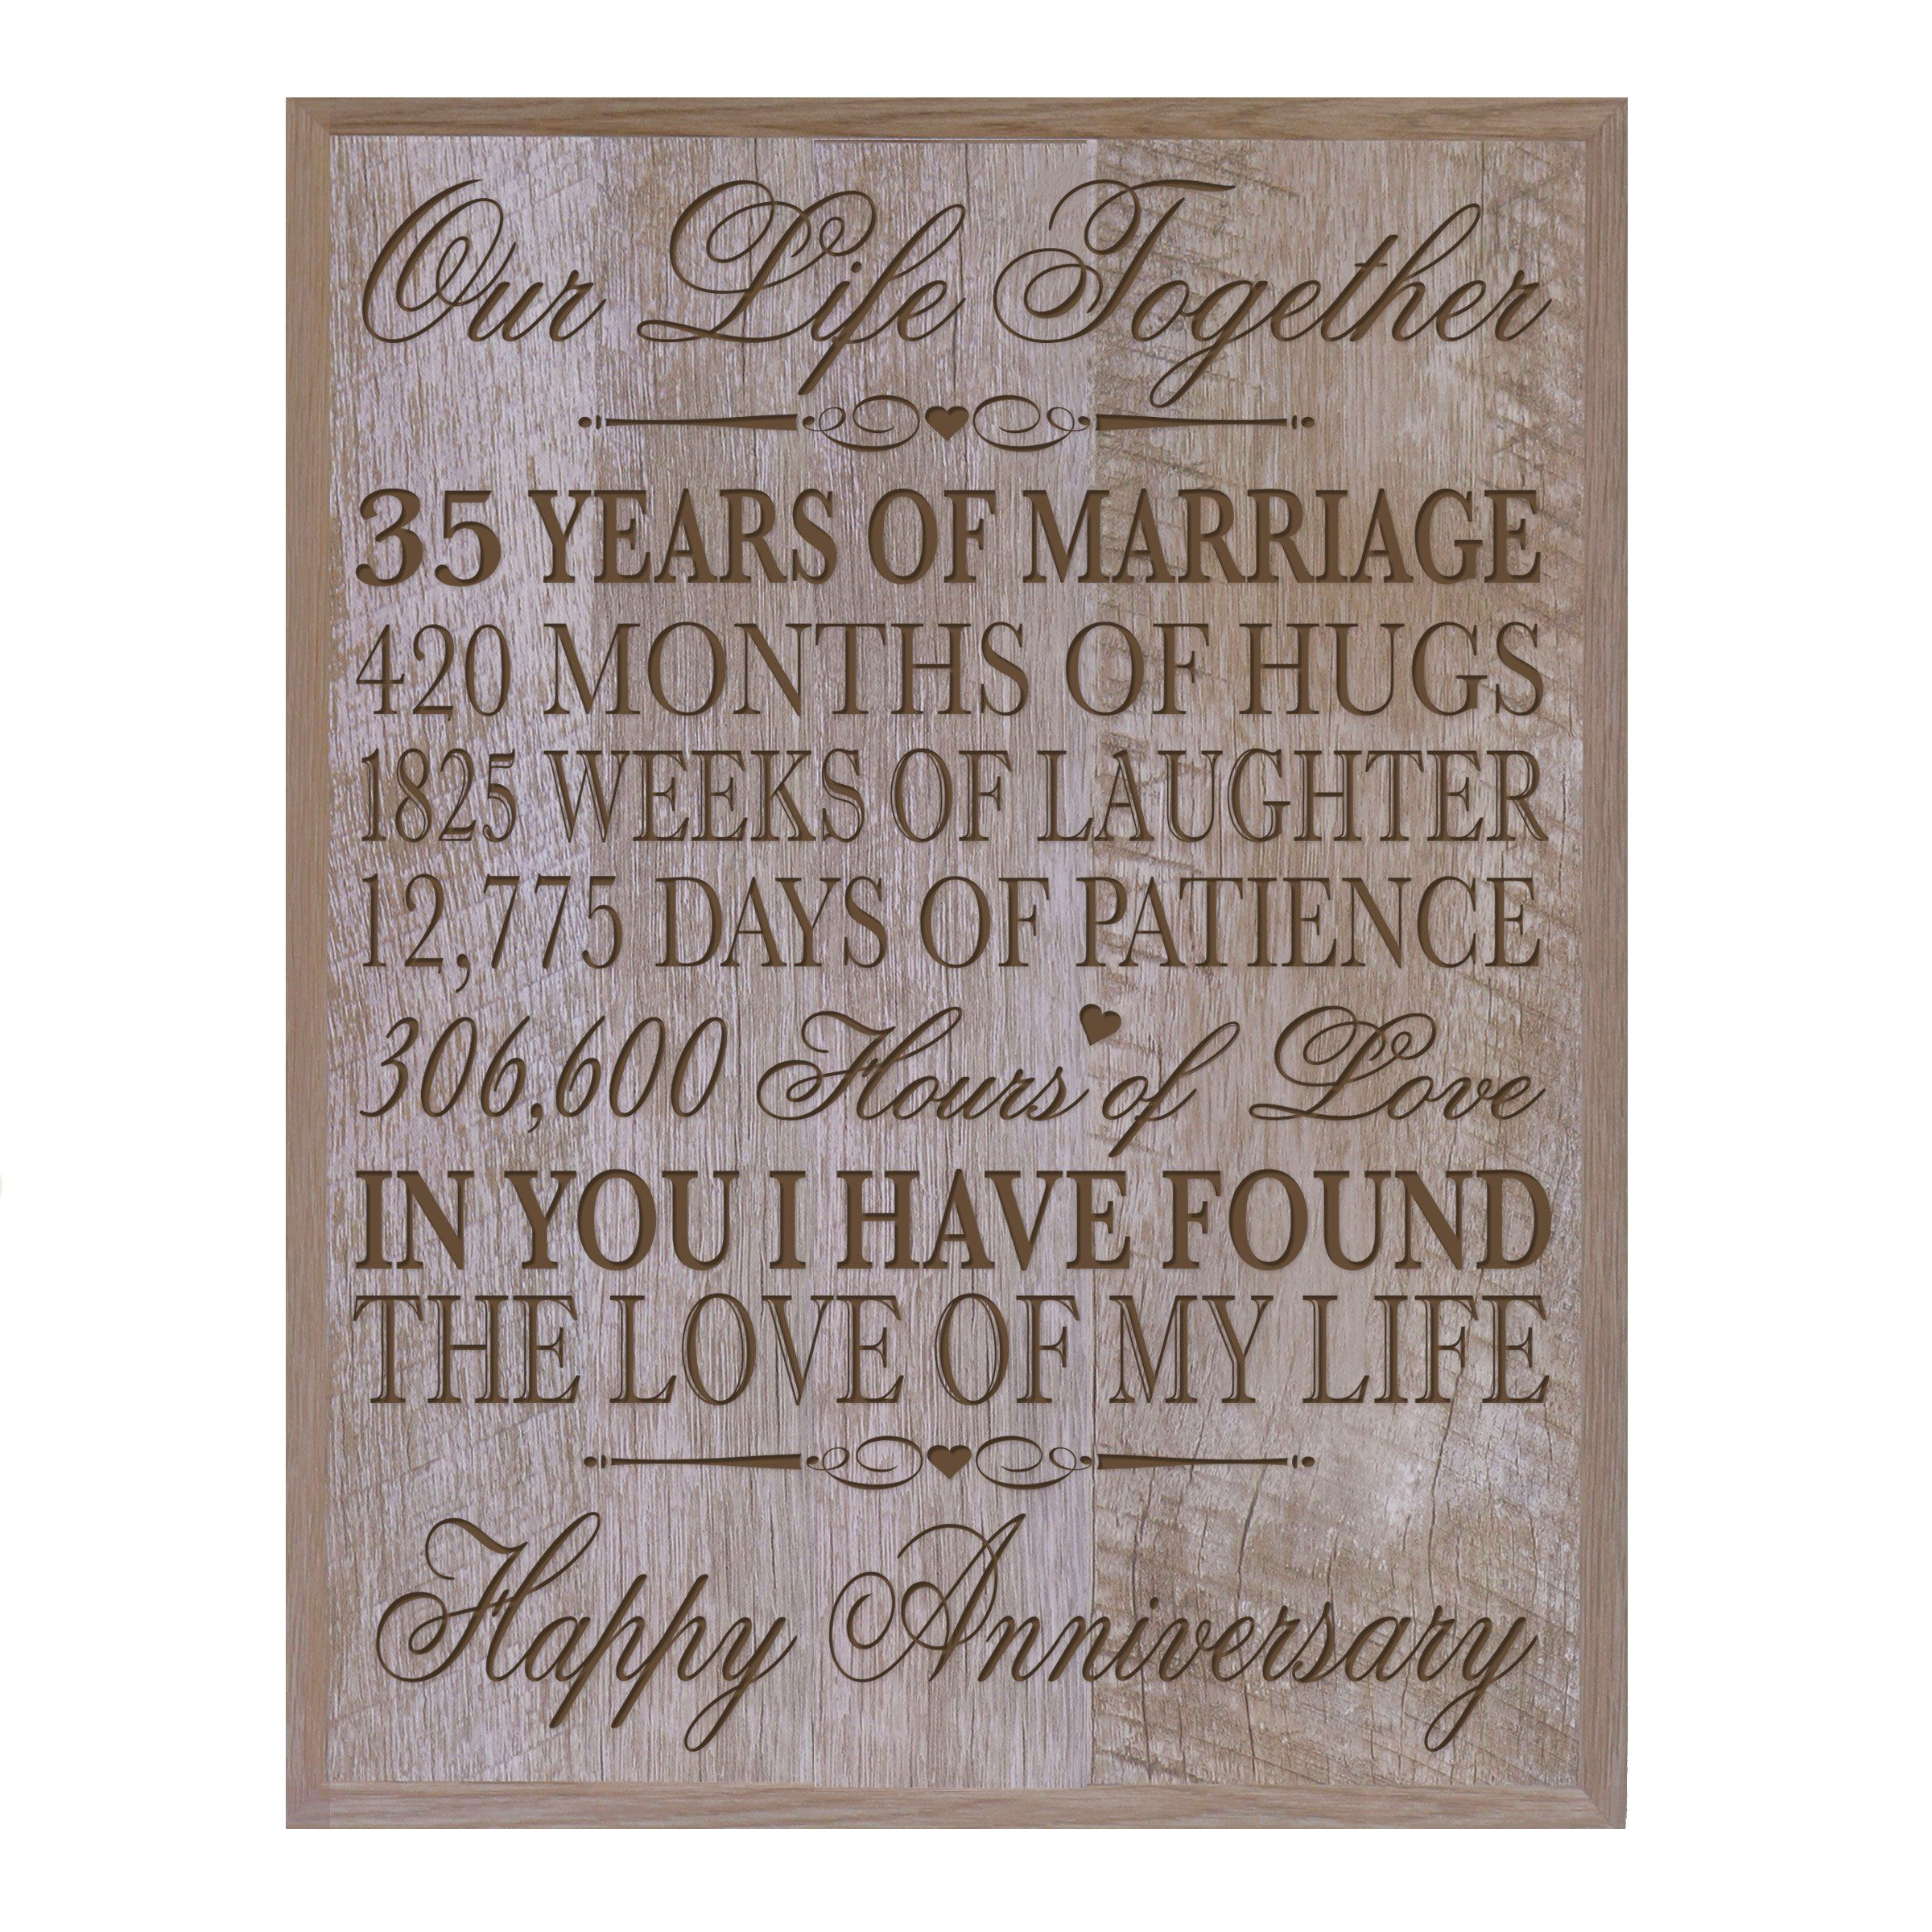 35th Wedding Anniversary Wall Plaque Gifts For Couple Custom Made 35th Anni 60th Wedding Anniversary Gifts 35th Wedding Anniversary Gift 60th Anniversary Gifts